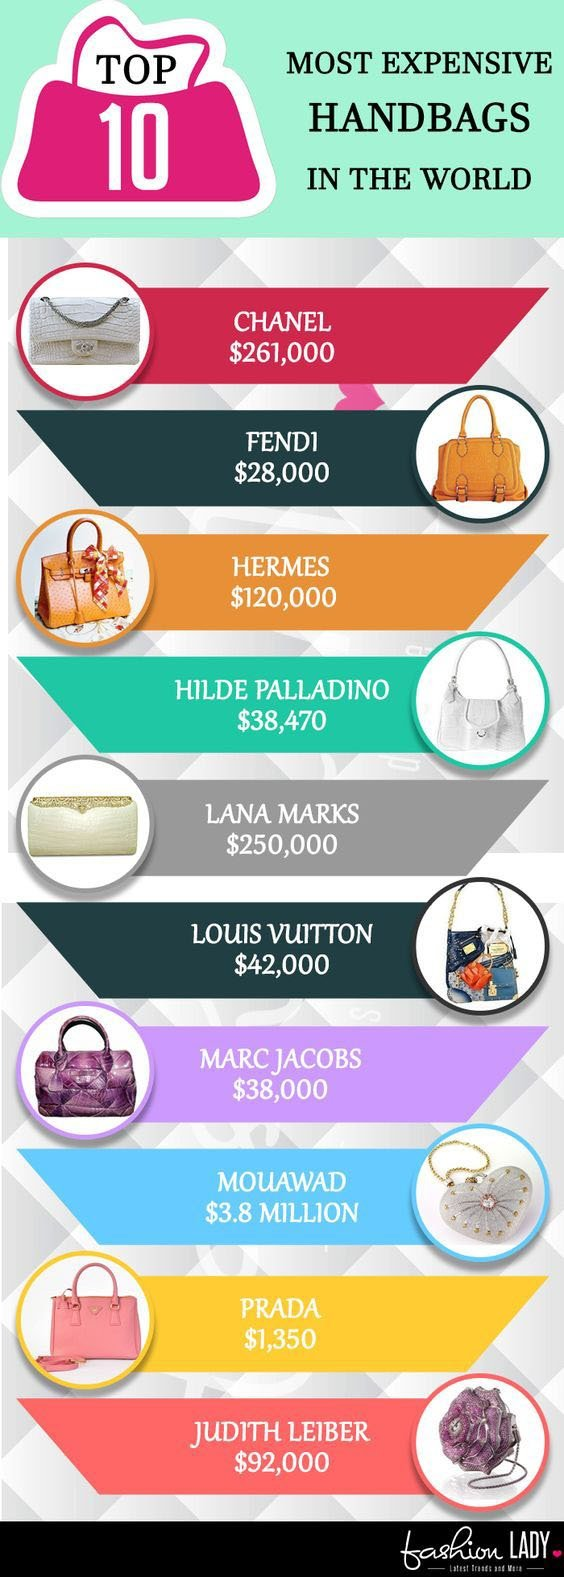 top 10 most expensive handbags in the world